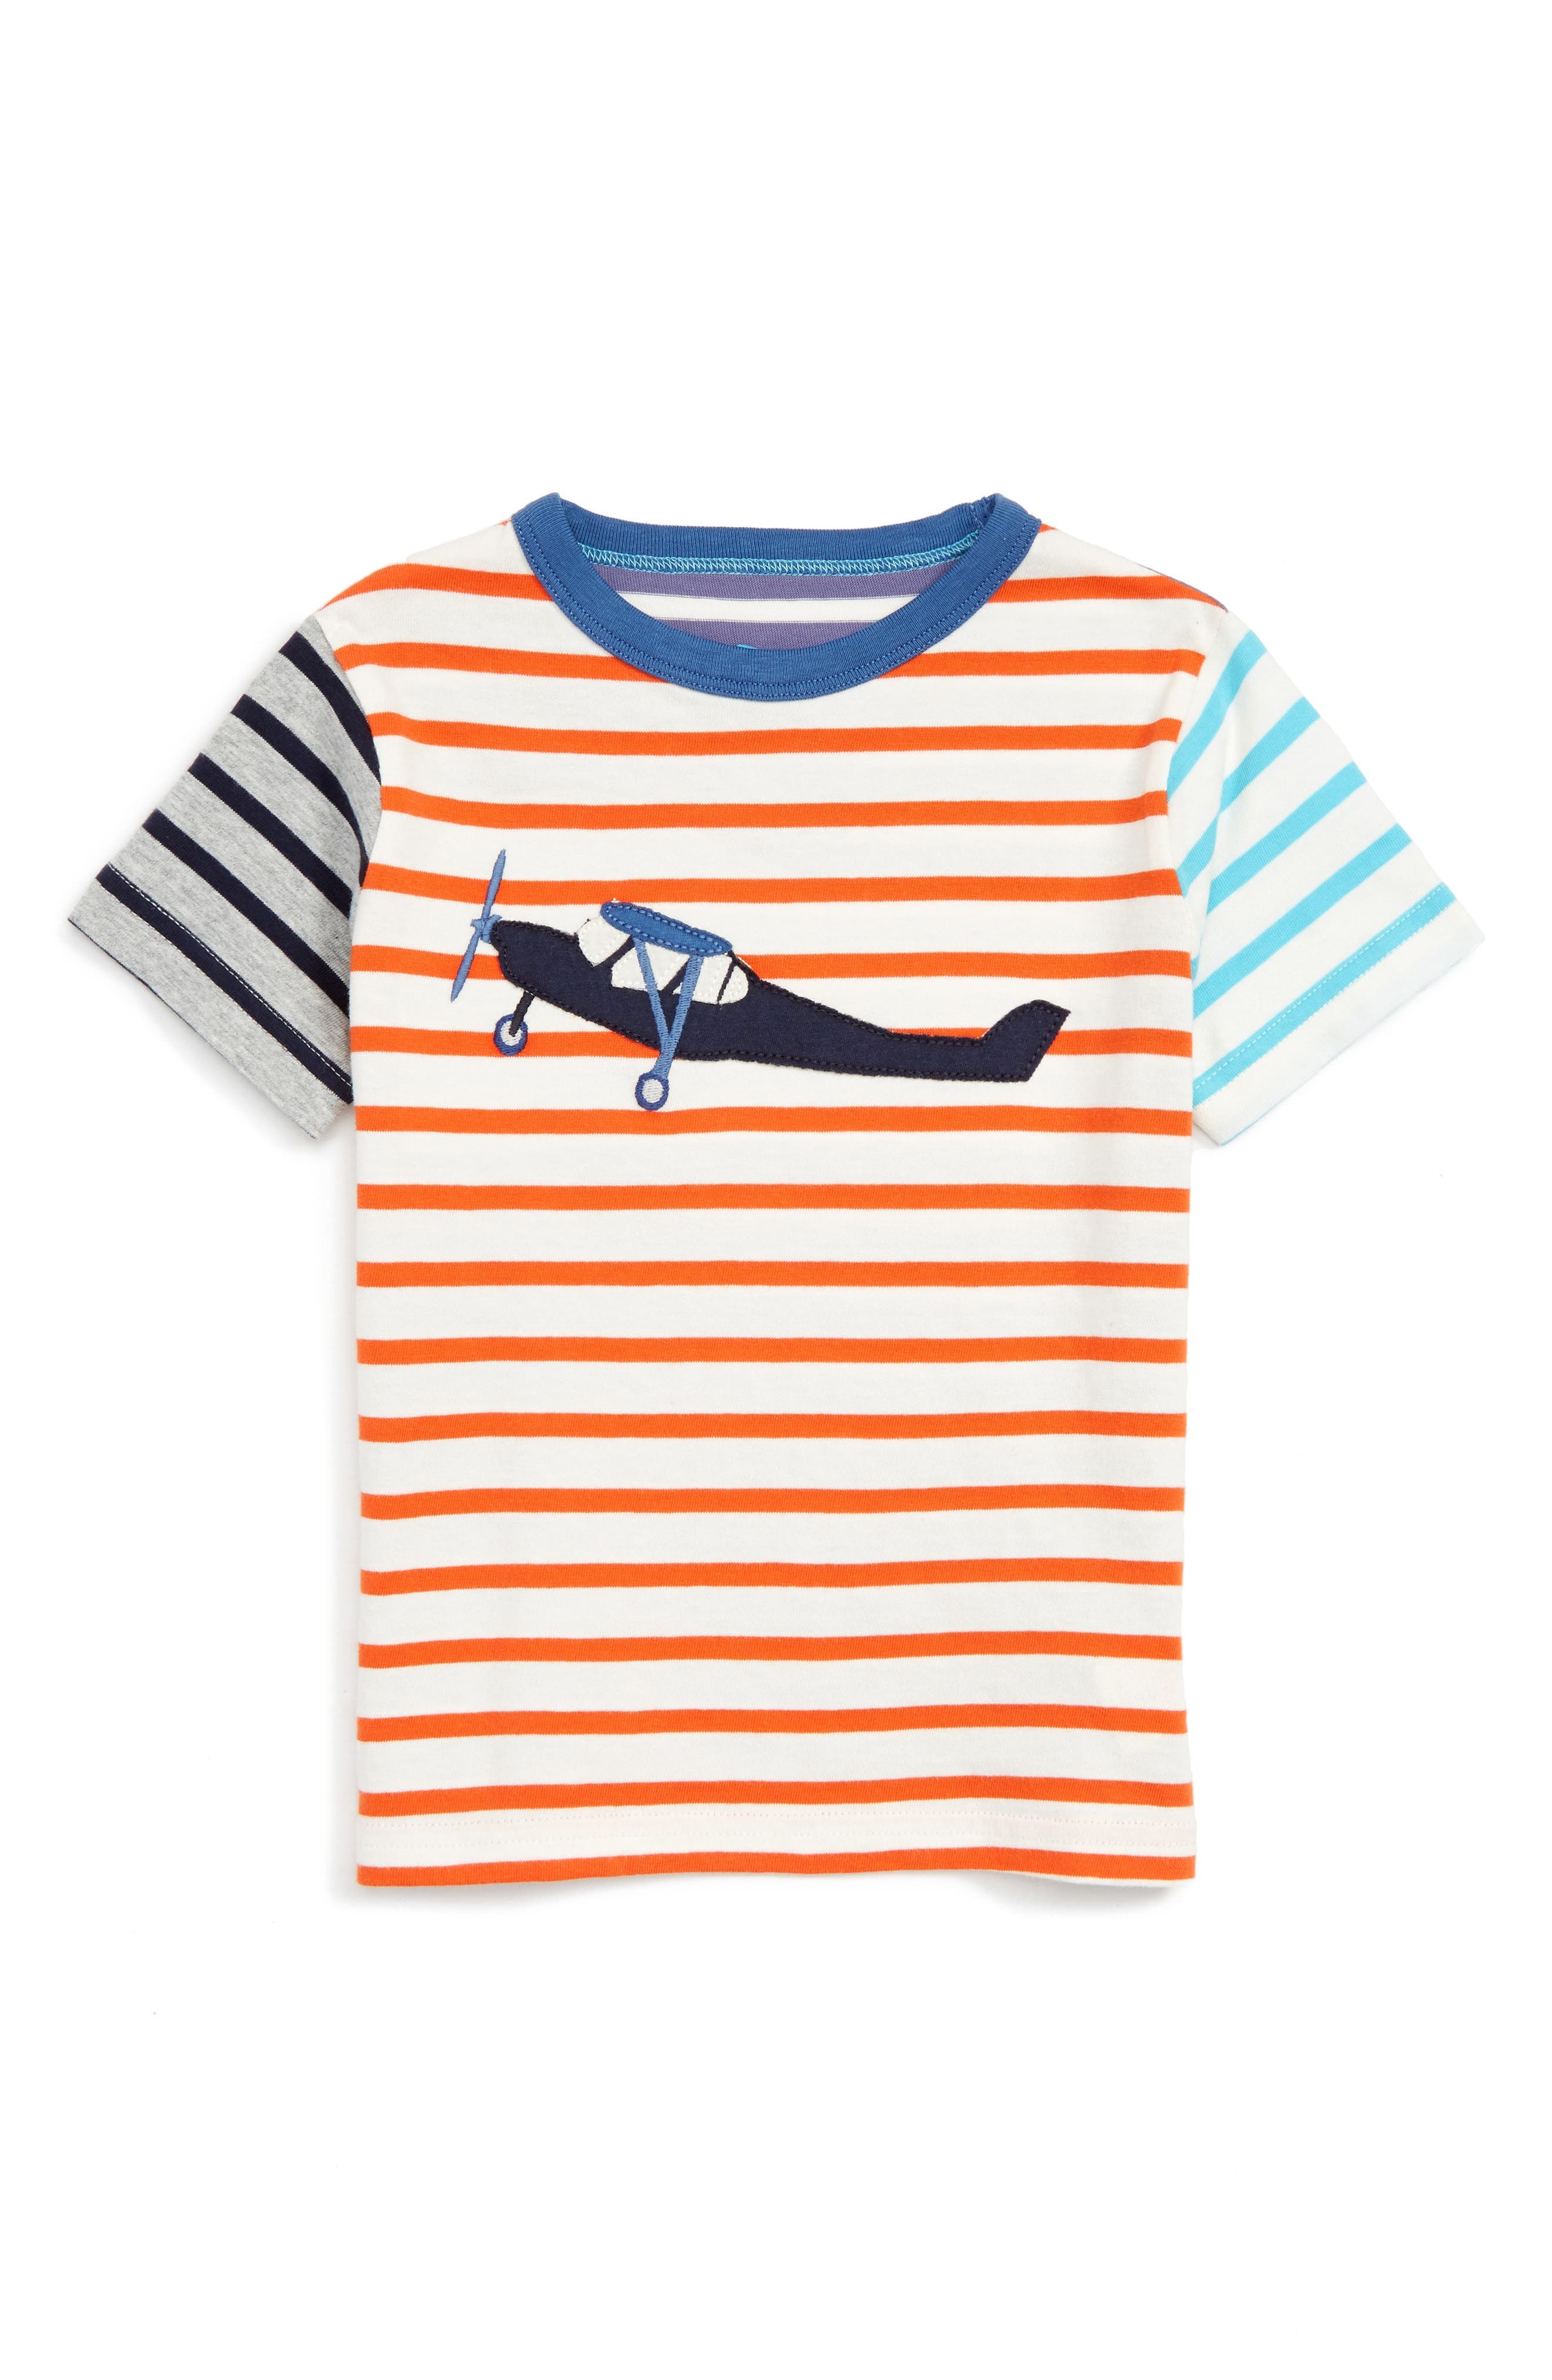 MINI BODEN Hotchpotch Vehicle Appliqué T-Shirt